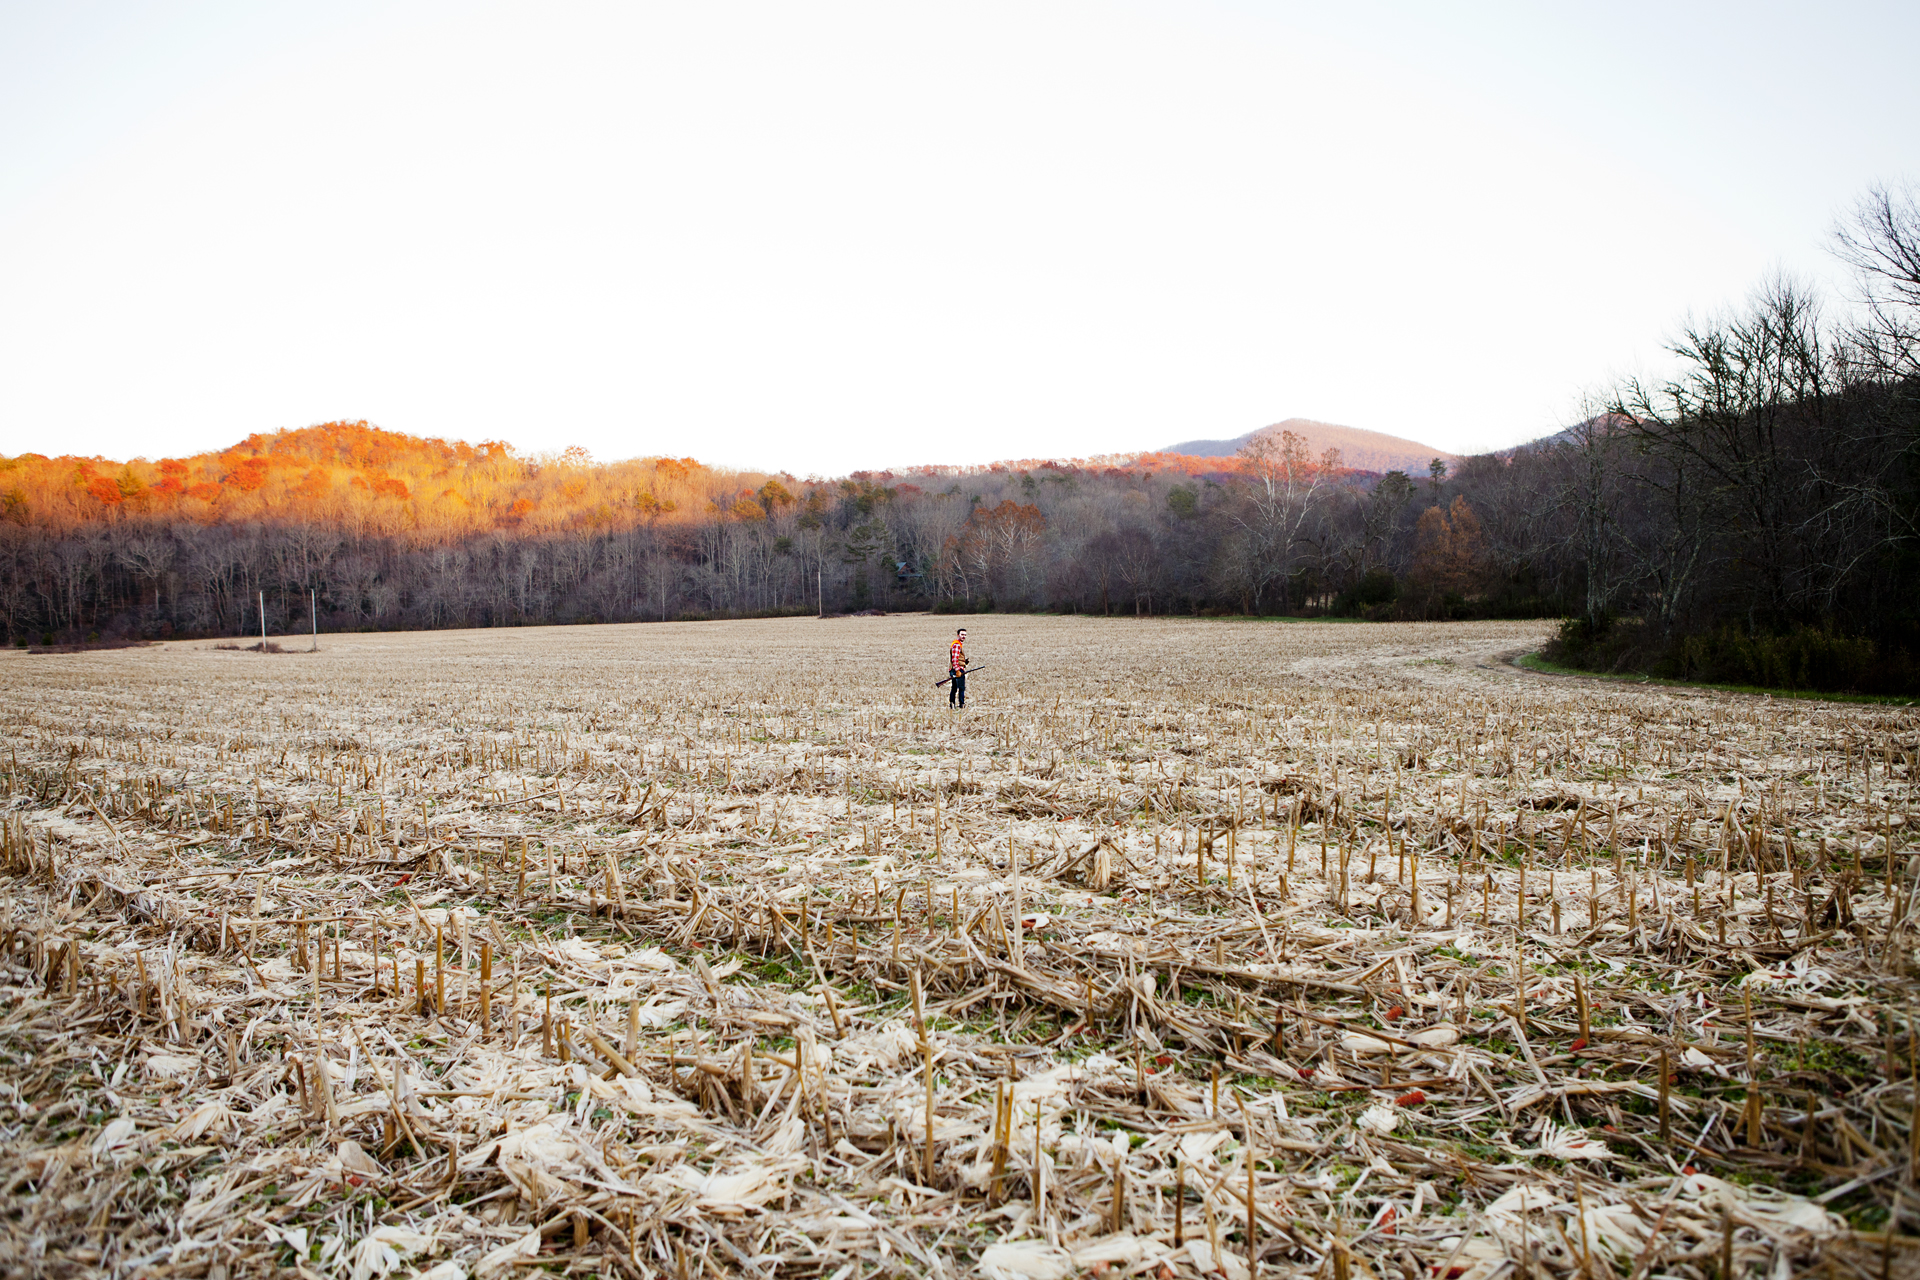 ADV007_Hunting_Mark_cornfield5.jpg